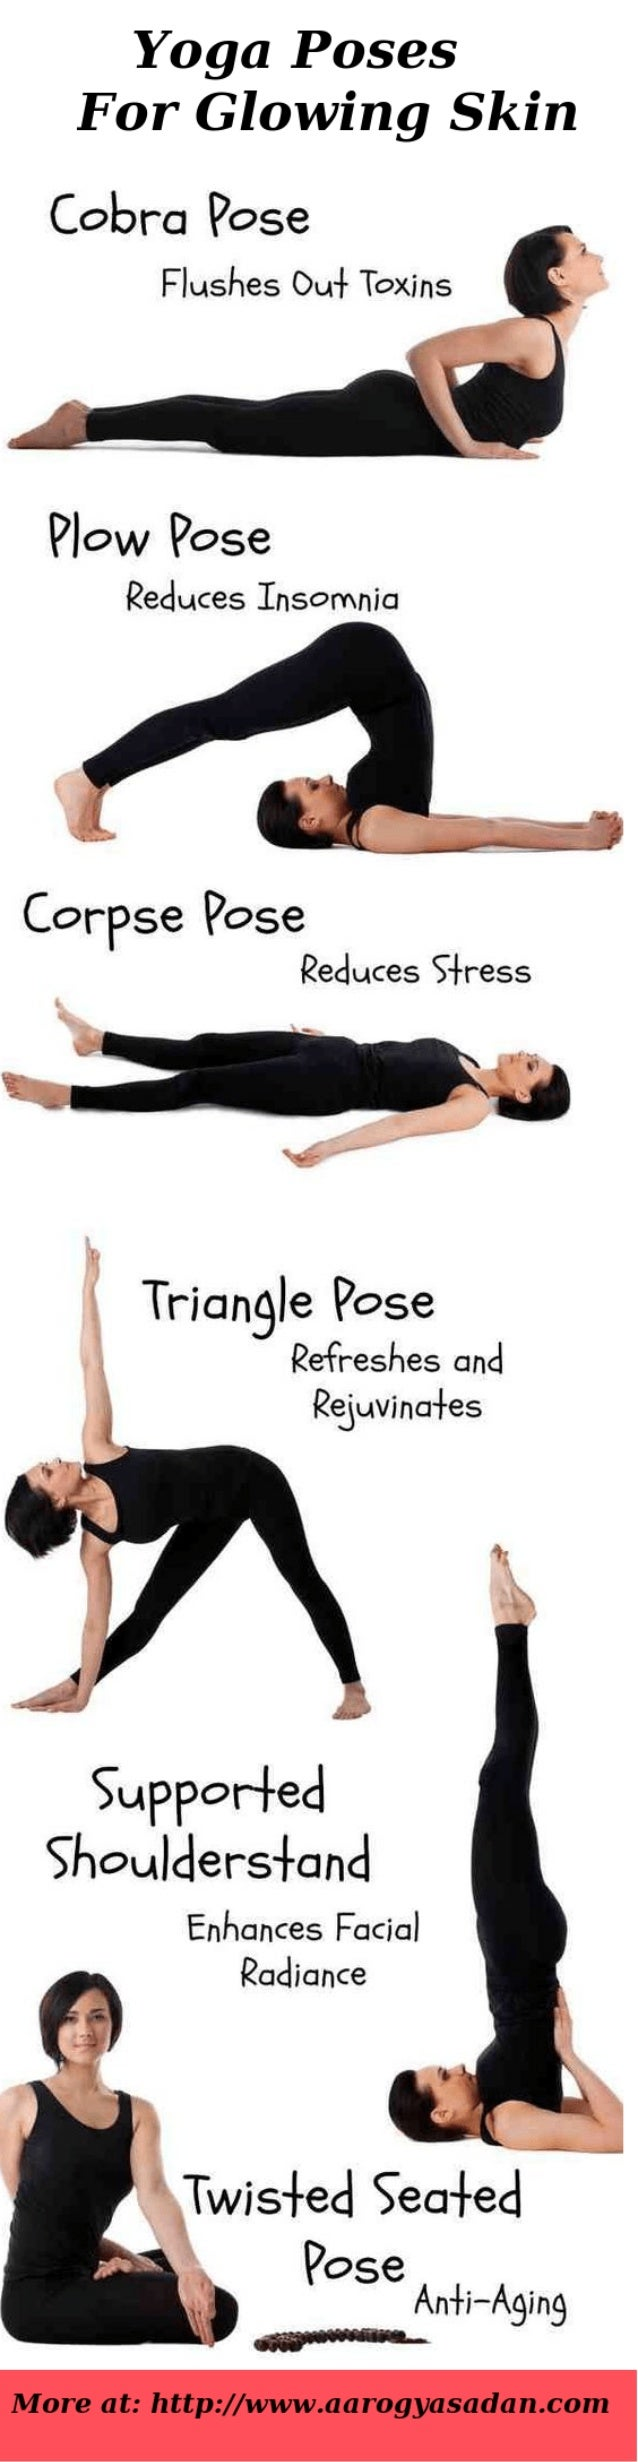 Yoga Poses For Clear Glowing Skin